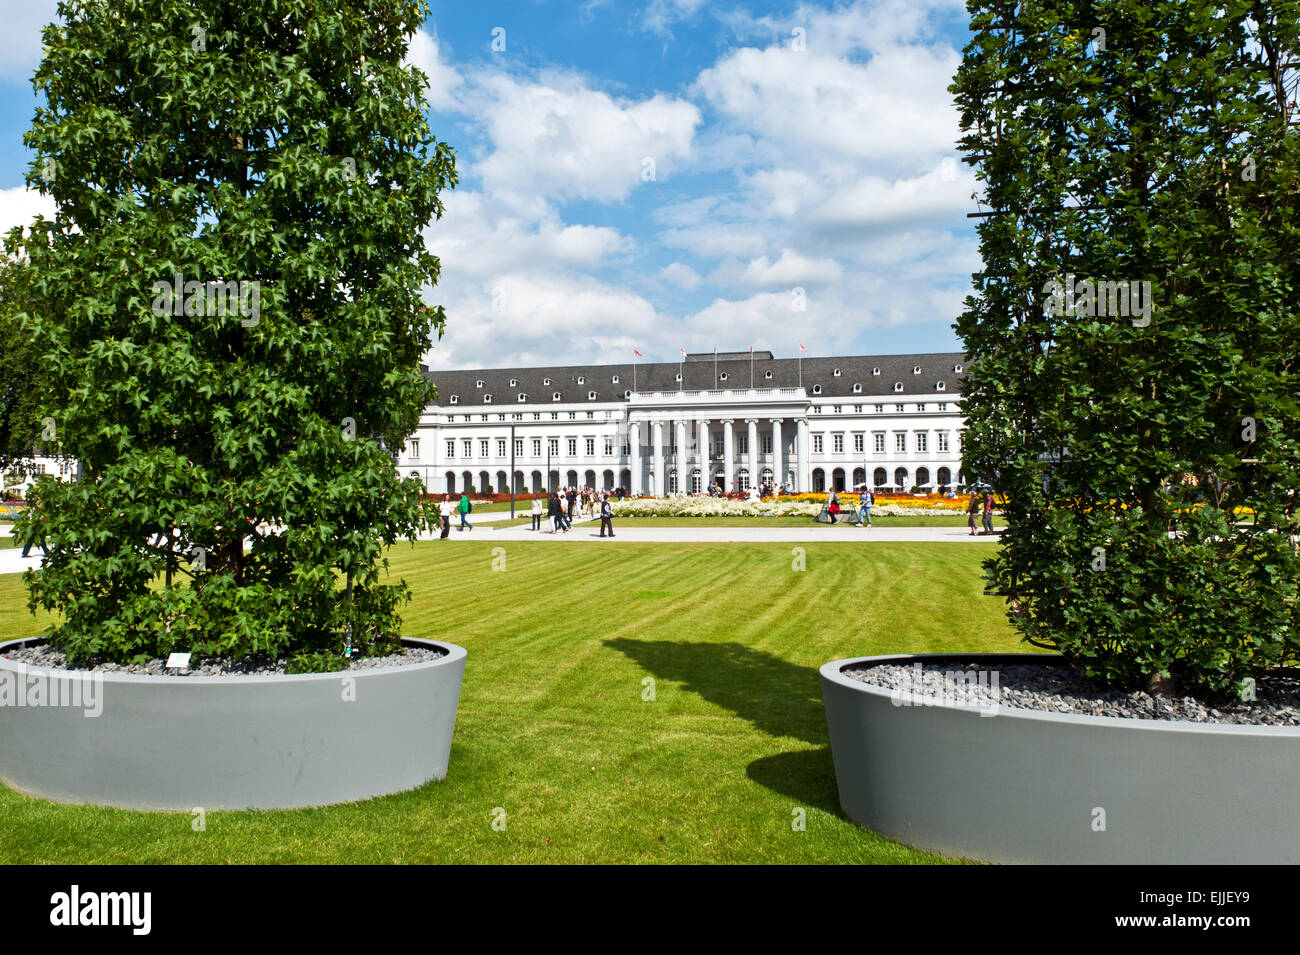 Horticultural show National Garden Festival BUGA 2011 in Koblenz Electoral Castle Rhineland-palatinate Germany Europe Stock Photo